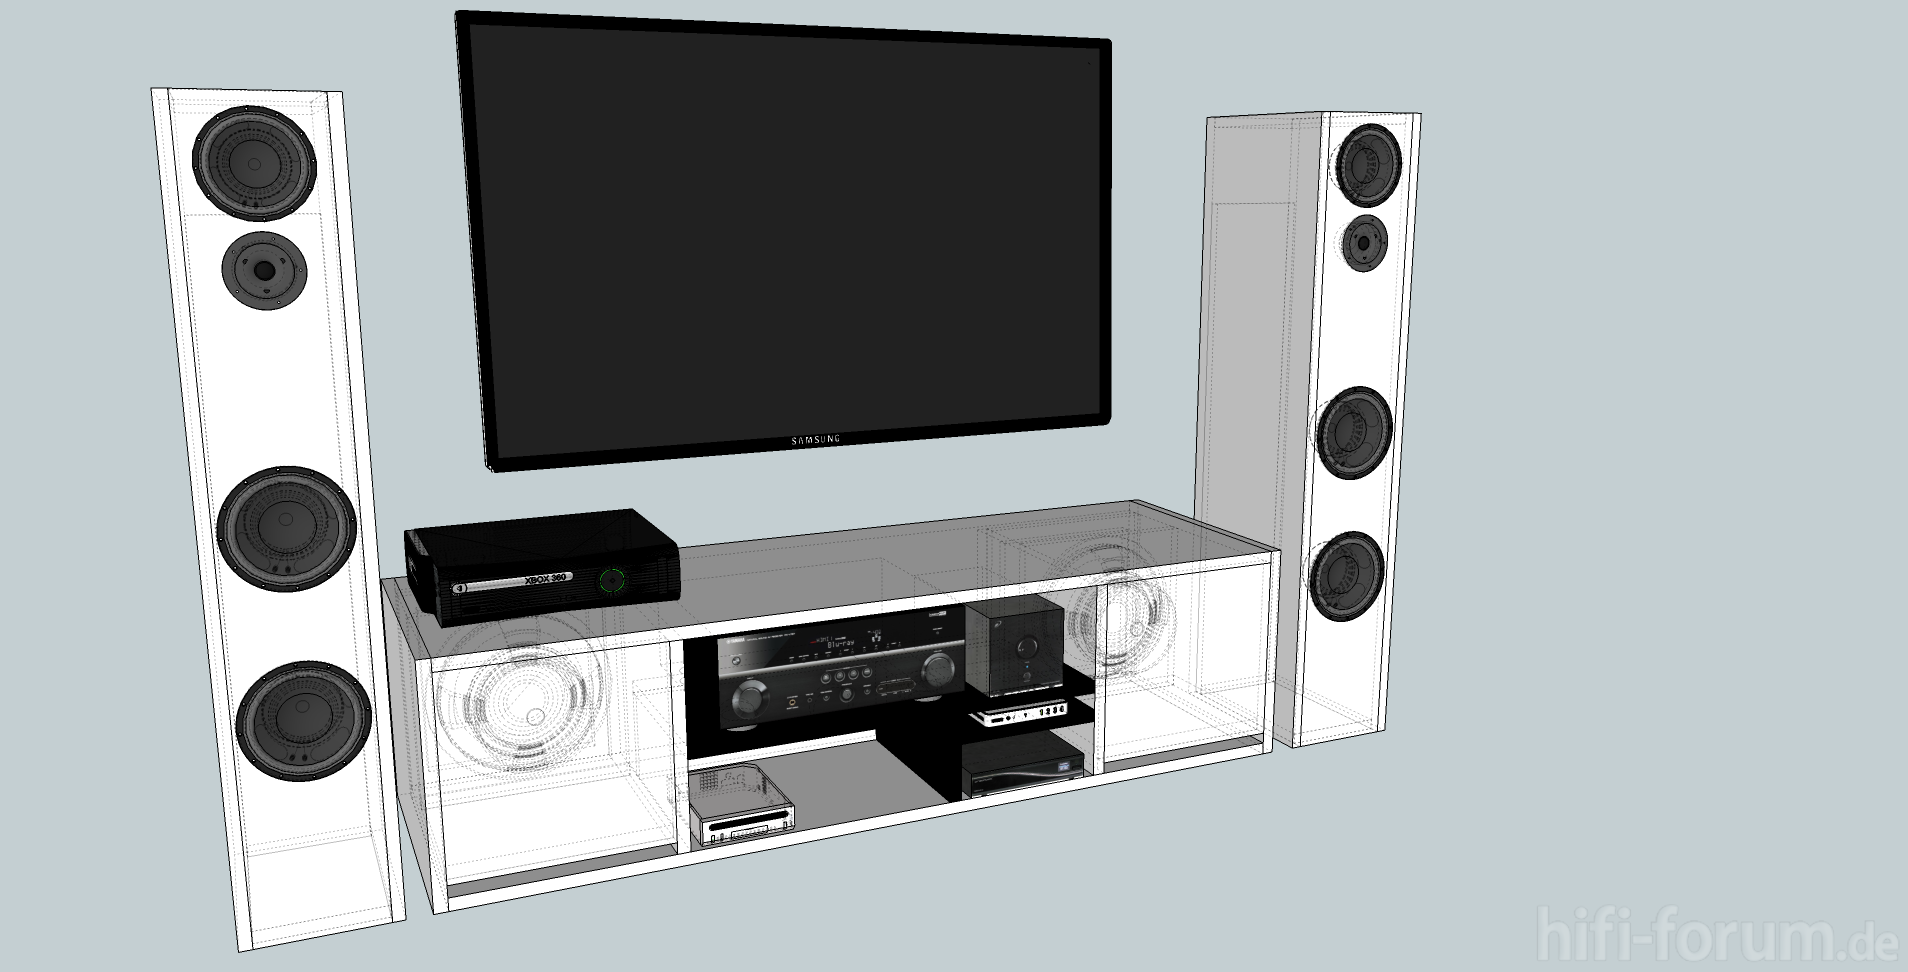 tv schrankinklsubwoofer doityourself lautsprecher tv hifi bildergalerie. Black Bedroom Furniture Sets. Home Design Ideas